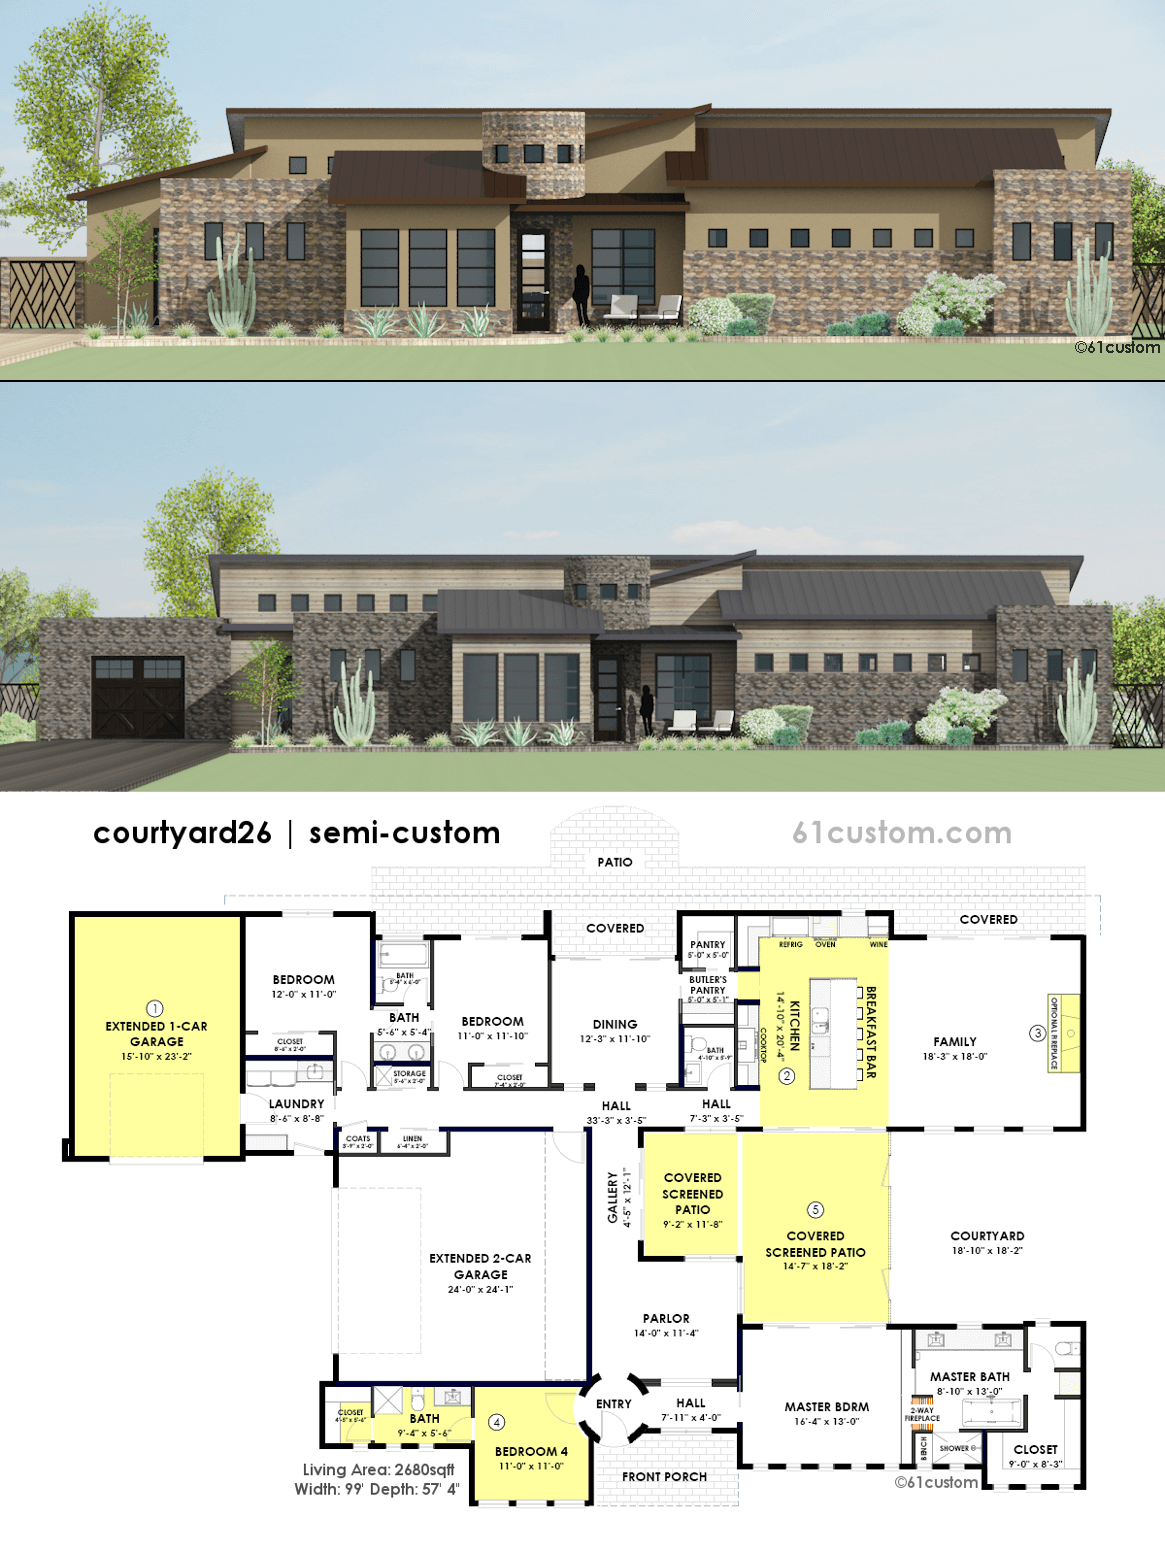 Wonderful Contemporary Courtyard House Plan | 61custom Nice Design